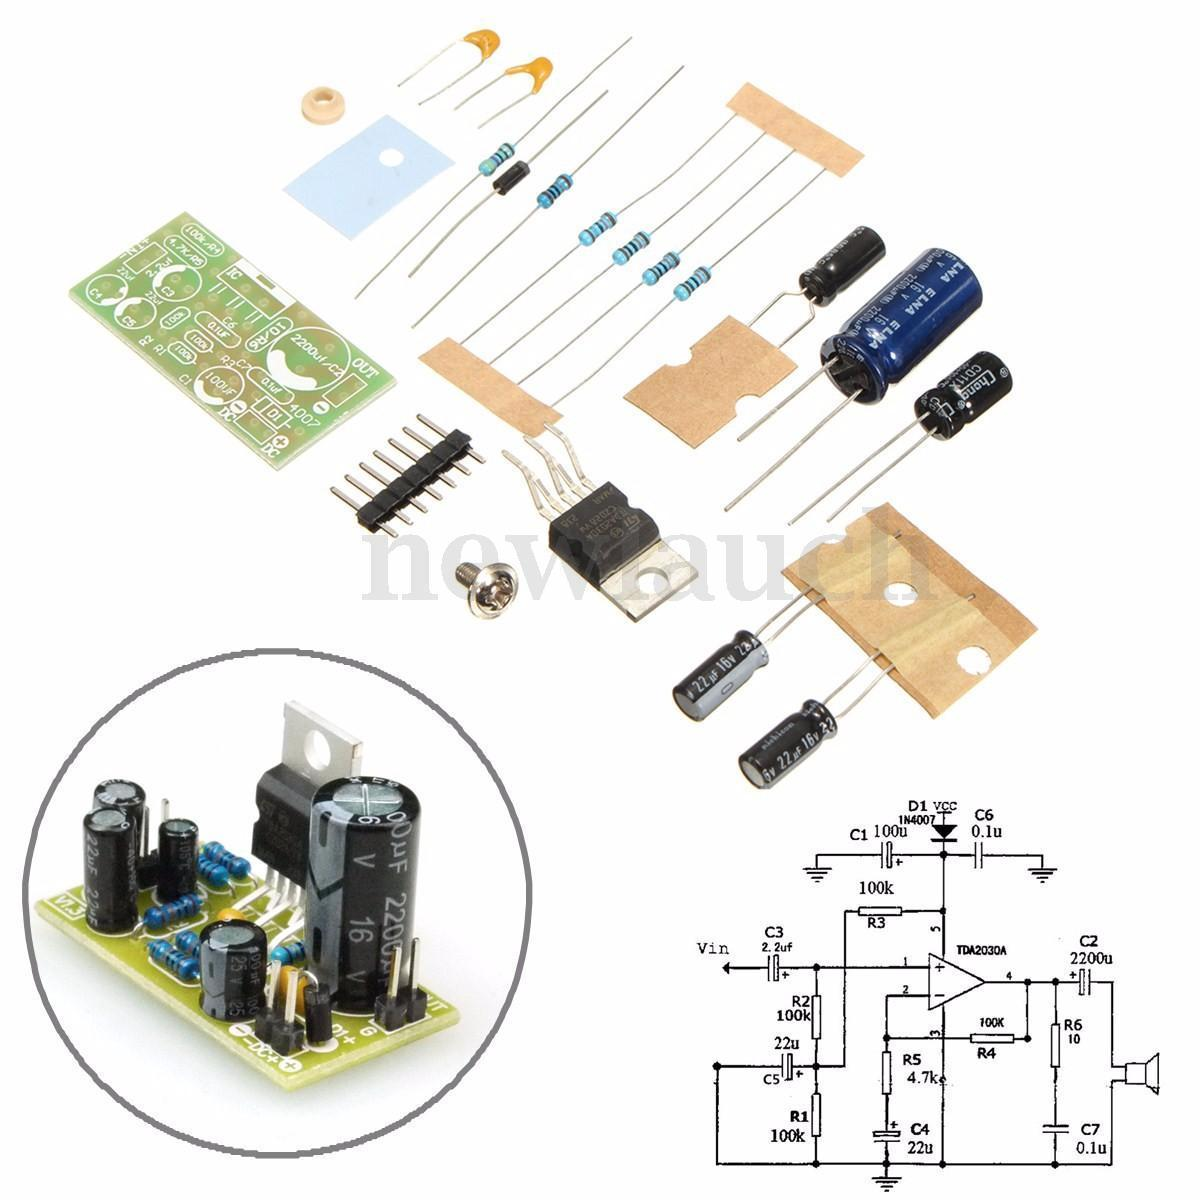 2A3 45 Perche Drive as well Stereo Audio  lifier Using Tea2025 Chip likewise TDA2030 Subwoofer Power  lifier Circuit in addition 943ey4 in addition Pp8214. on 6 v power amplifier circuit diagram